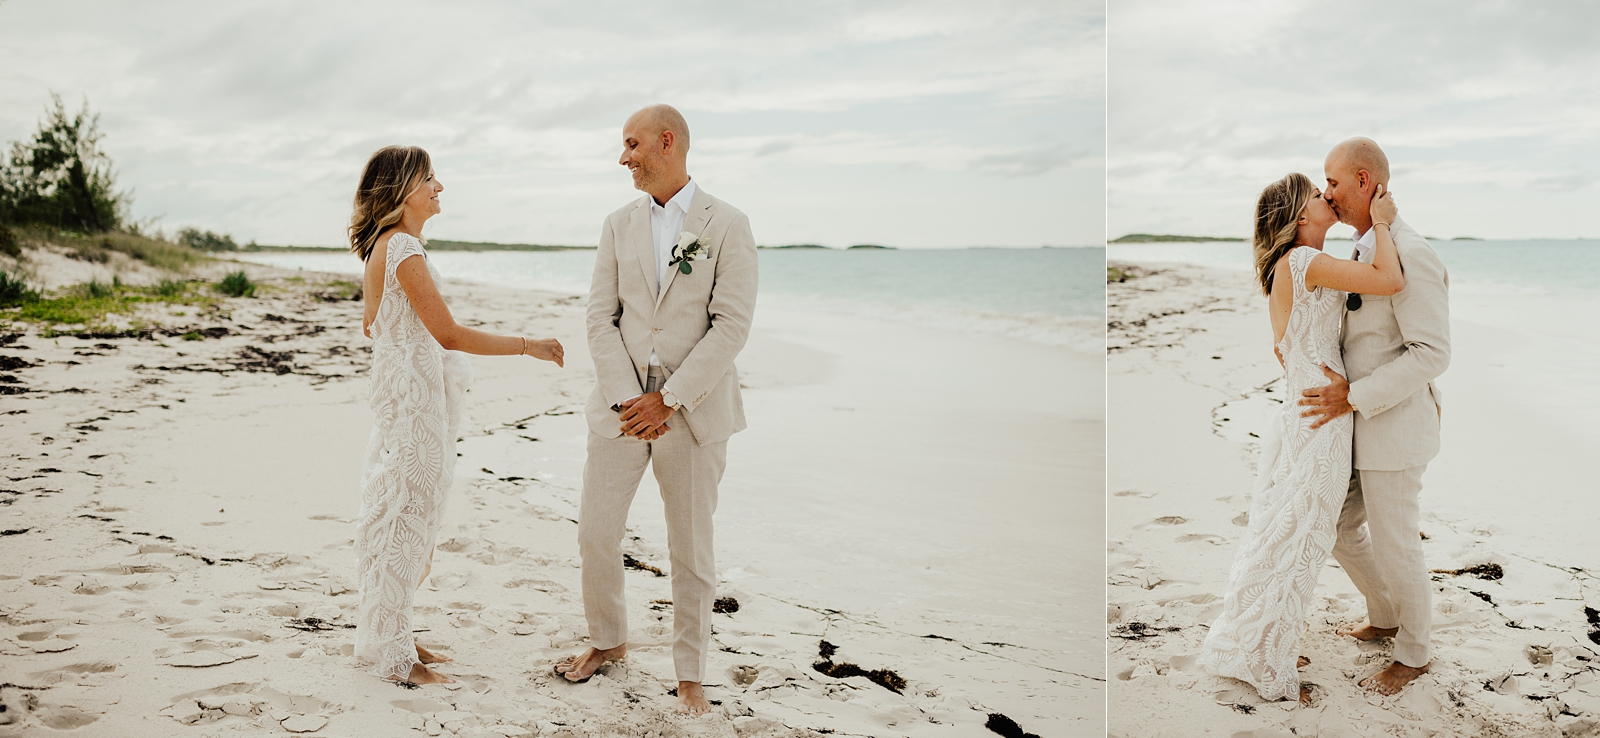 Jenni & Andrew Intimate Beach Destination Wedding in Little Exuma, Bahamas_0486.jpg